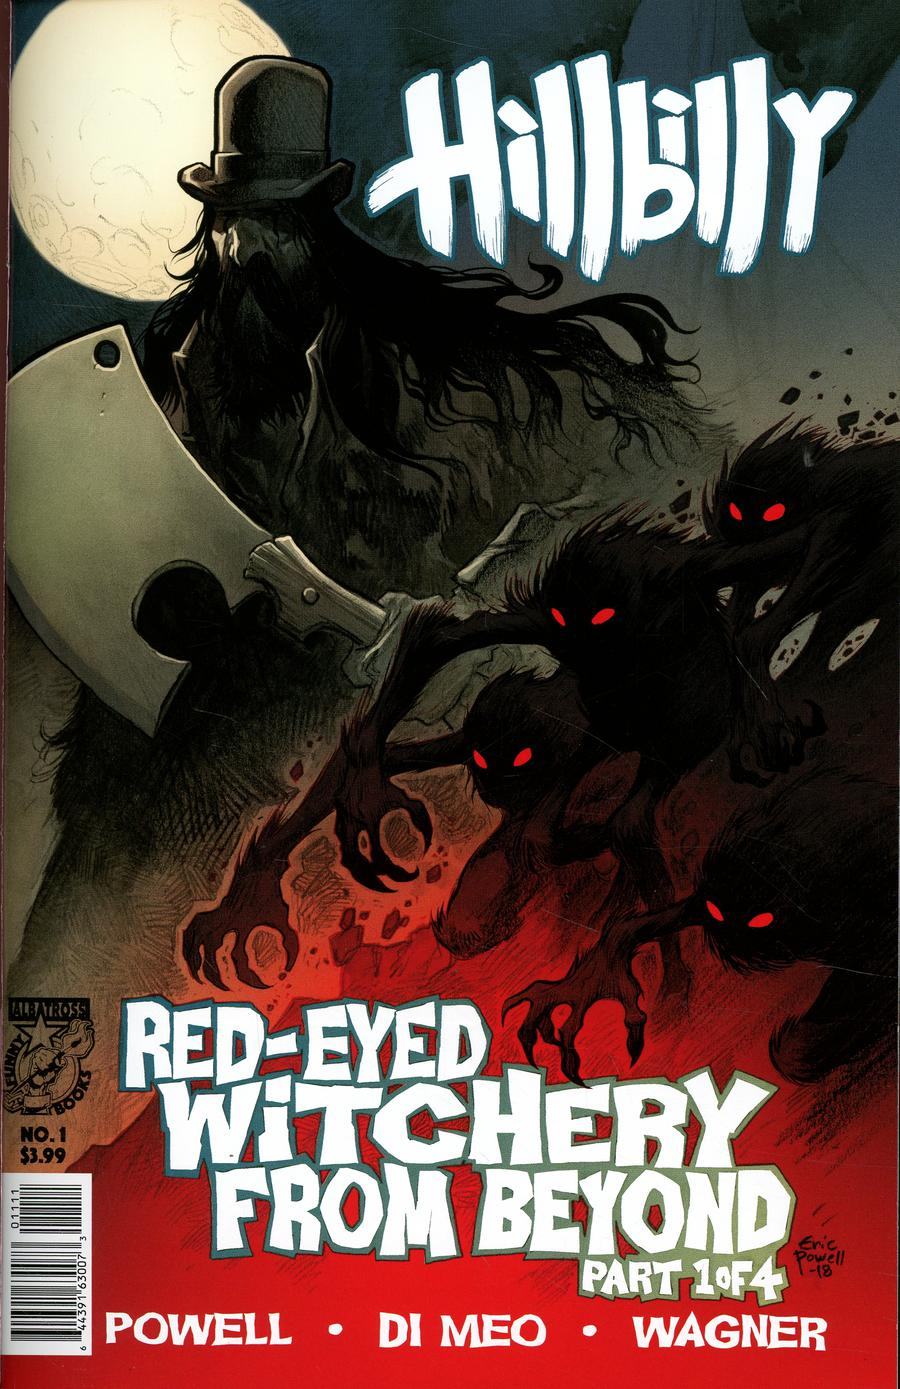 Hillbilly Red-Eyed Witchery From Beyond #1